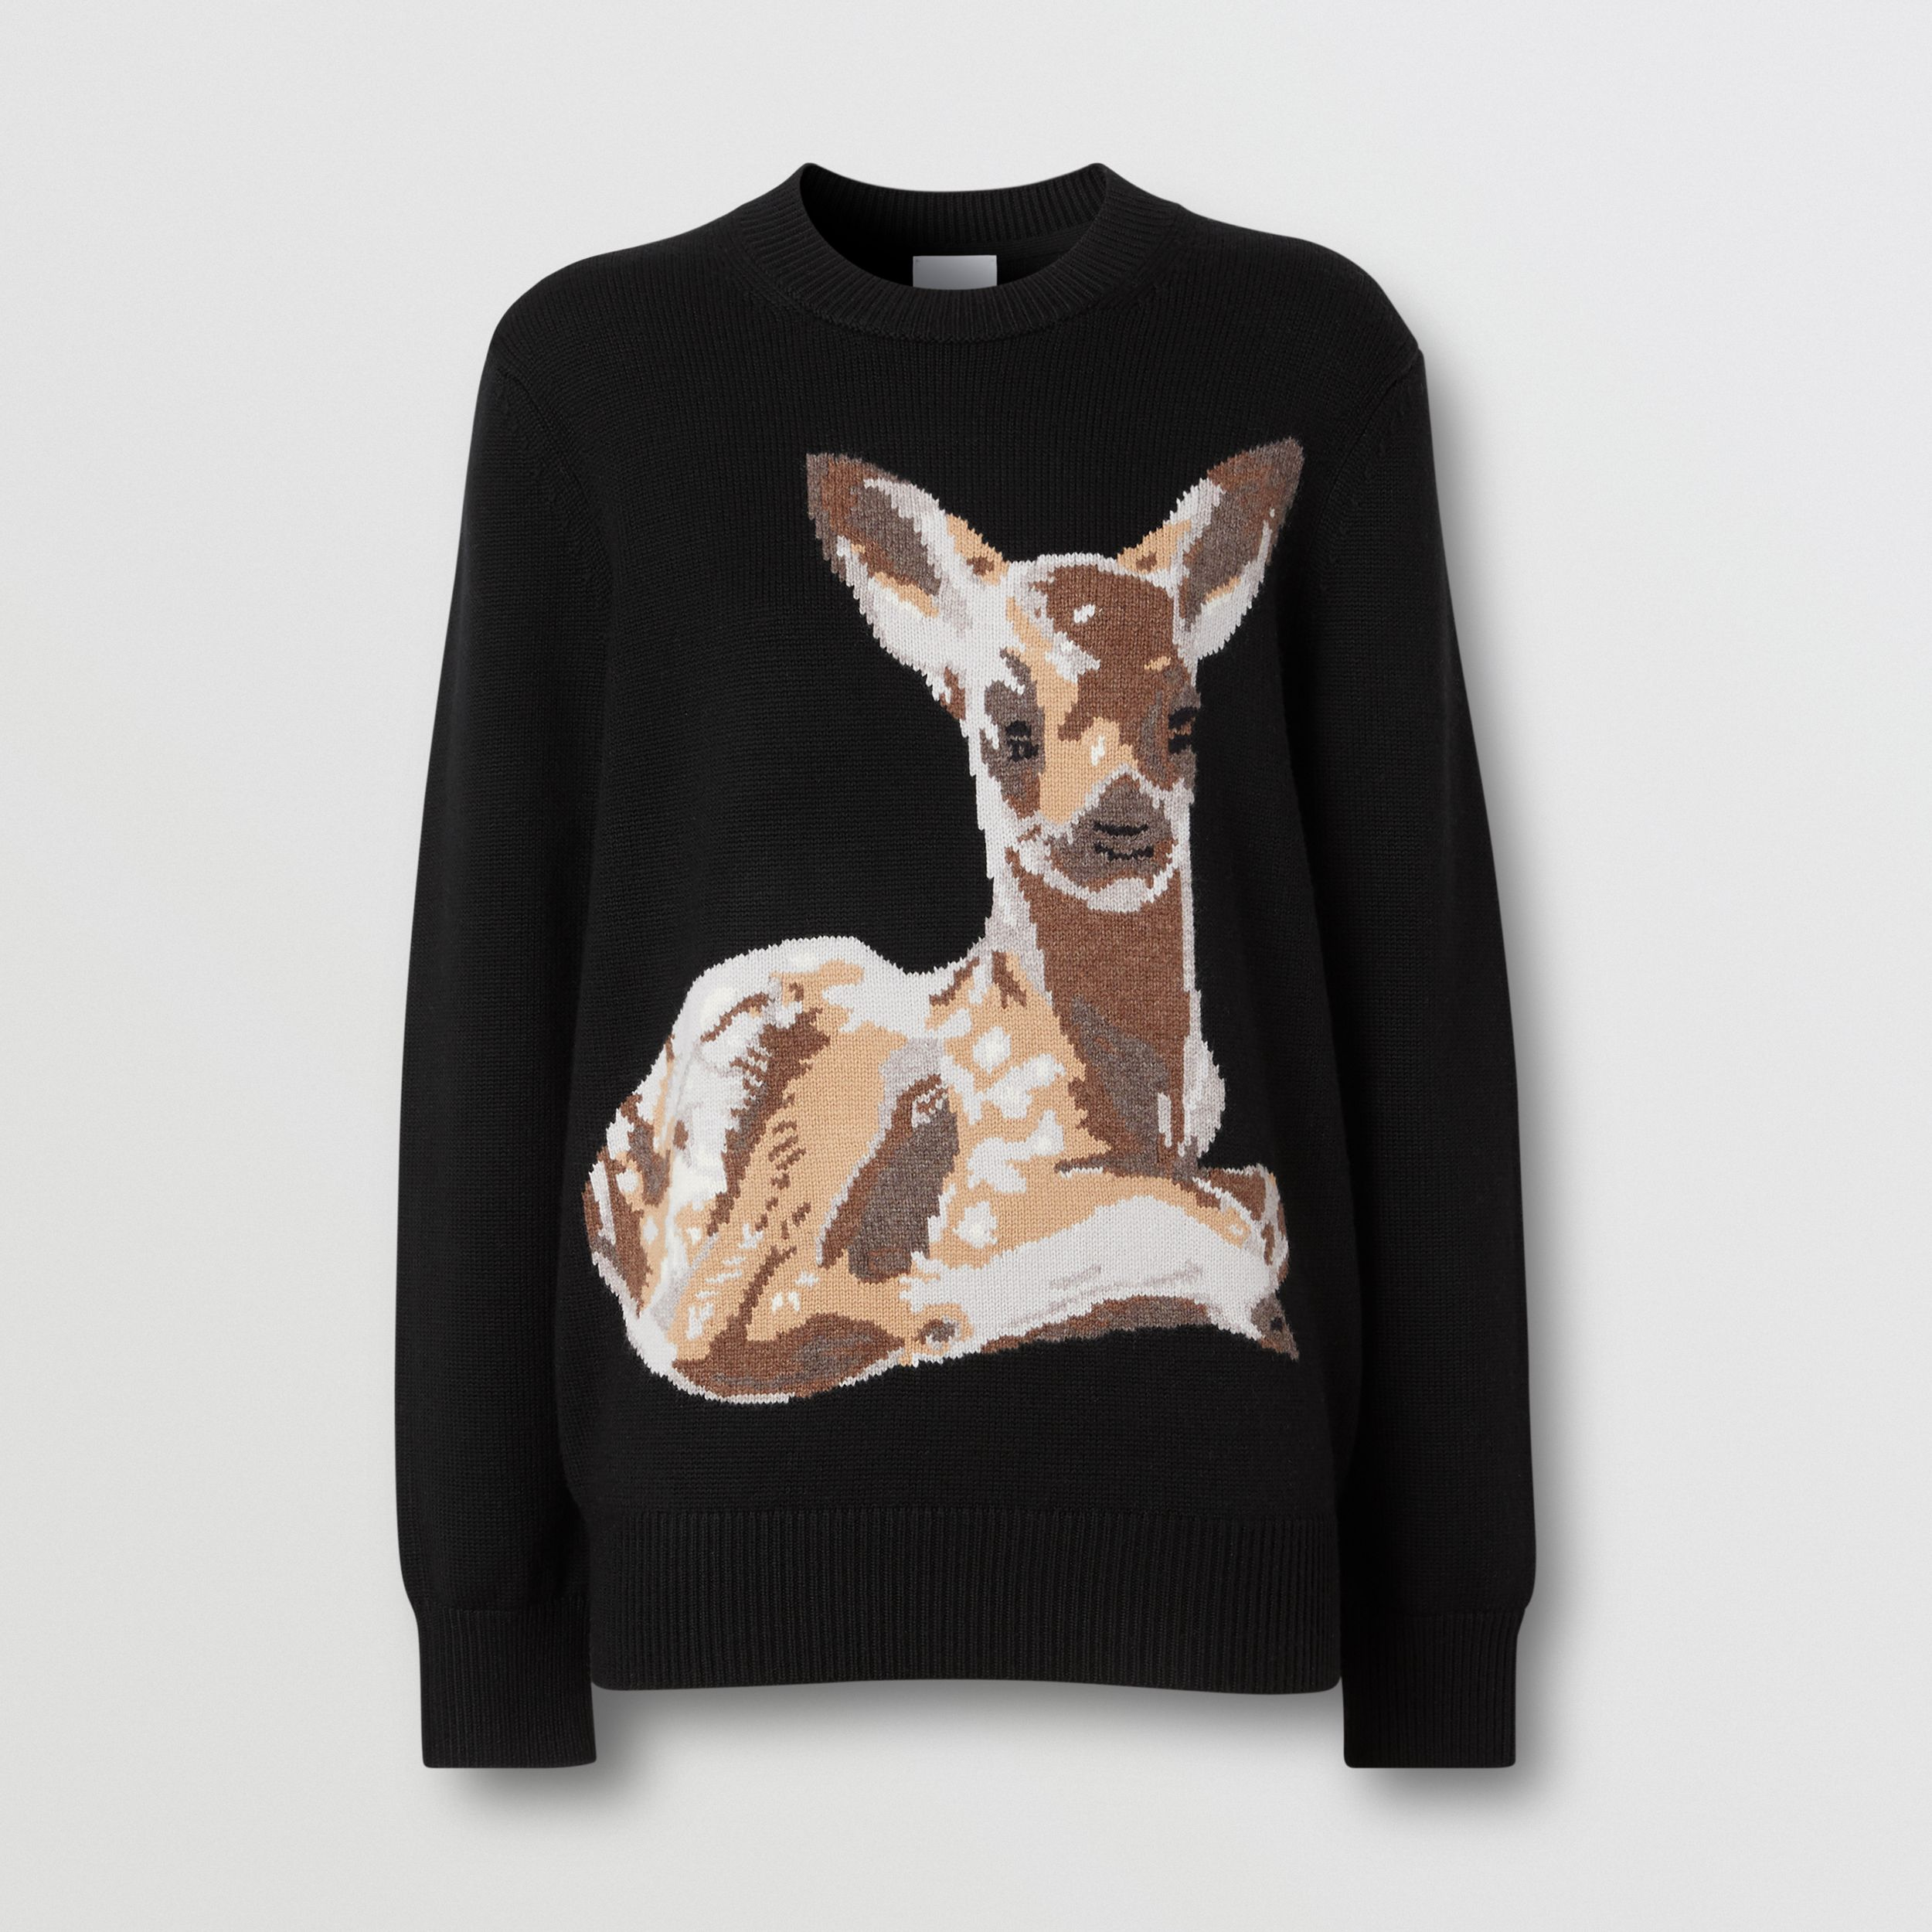 Deer Intarsia Wool Sweater in Black - Women | Burberry - 4